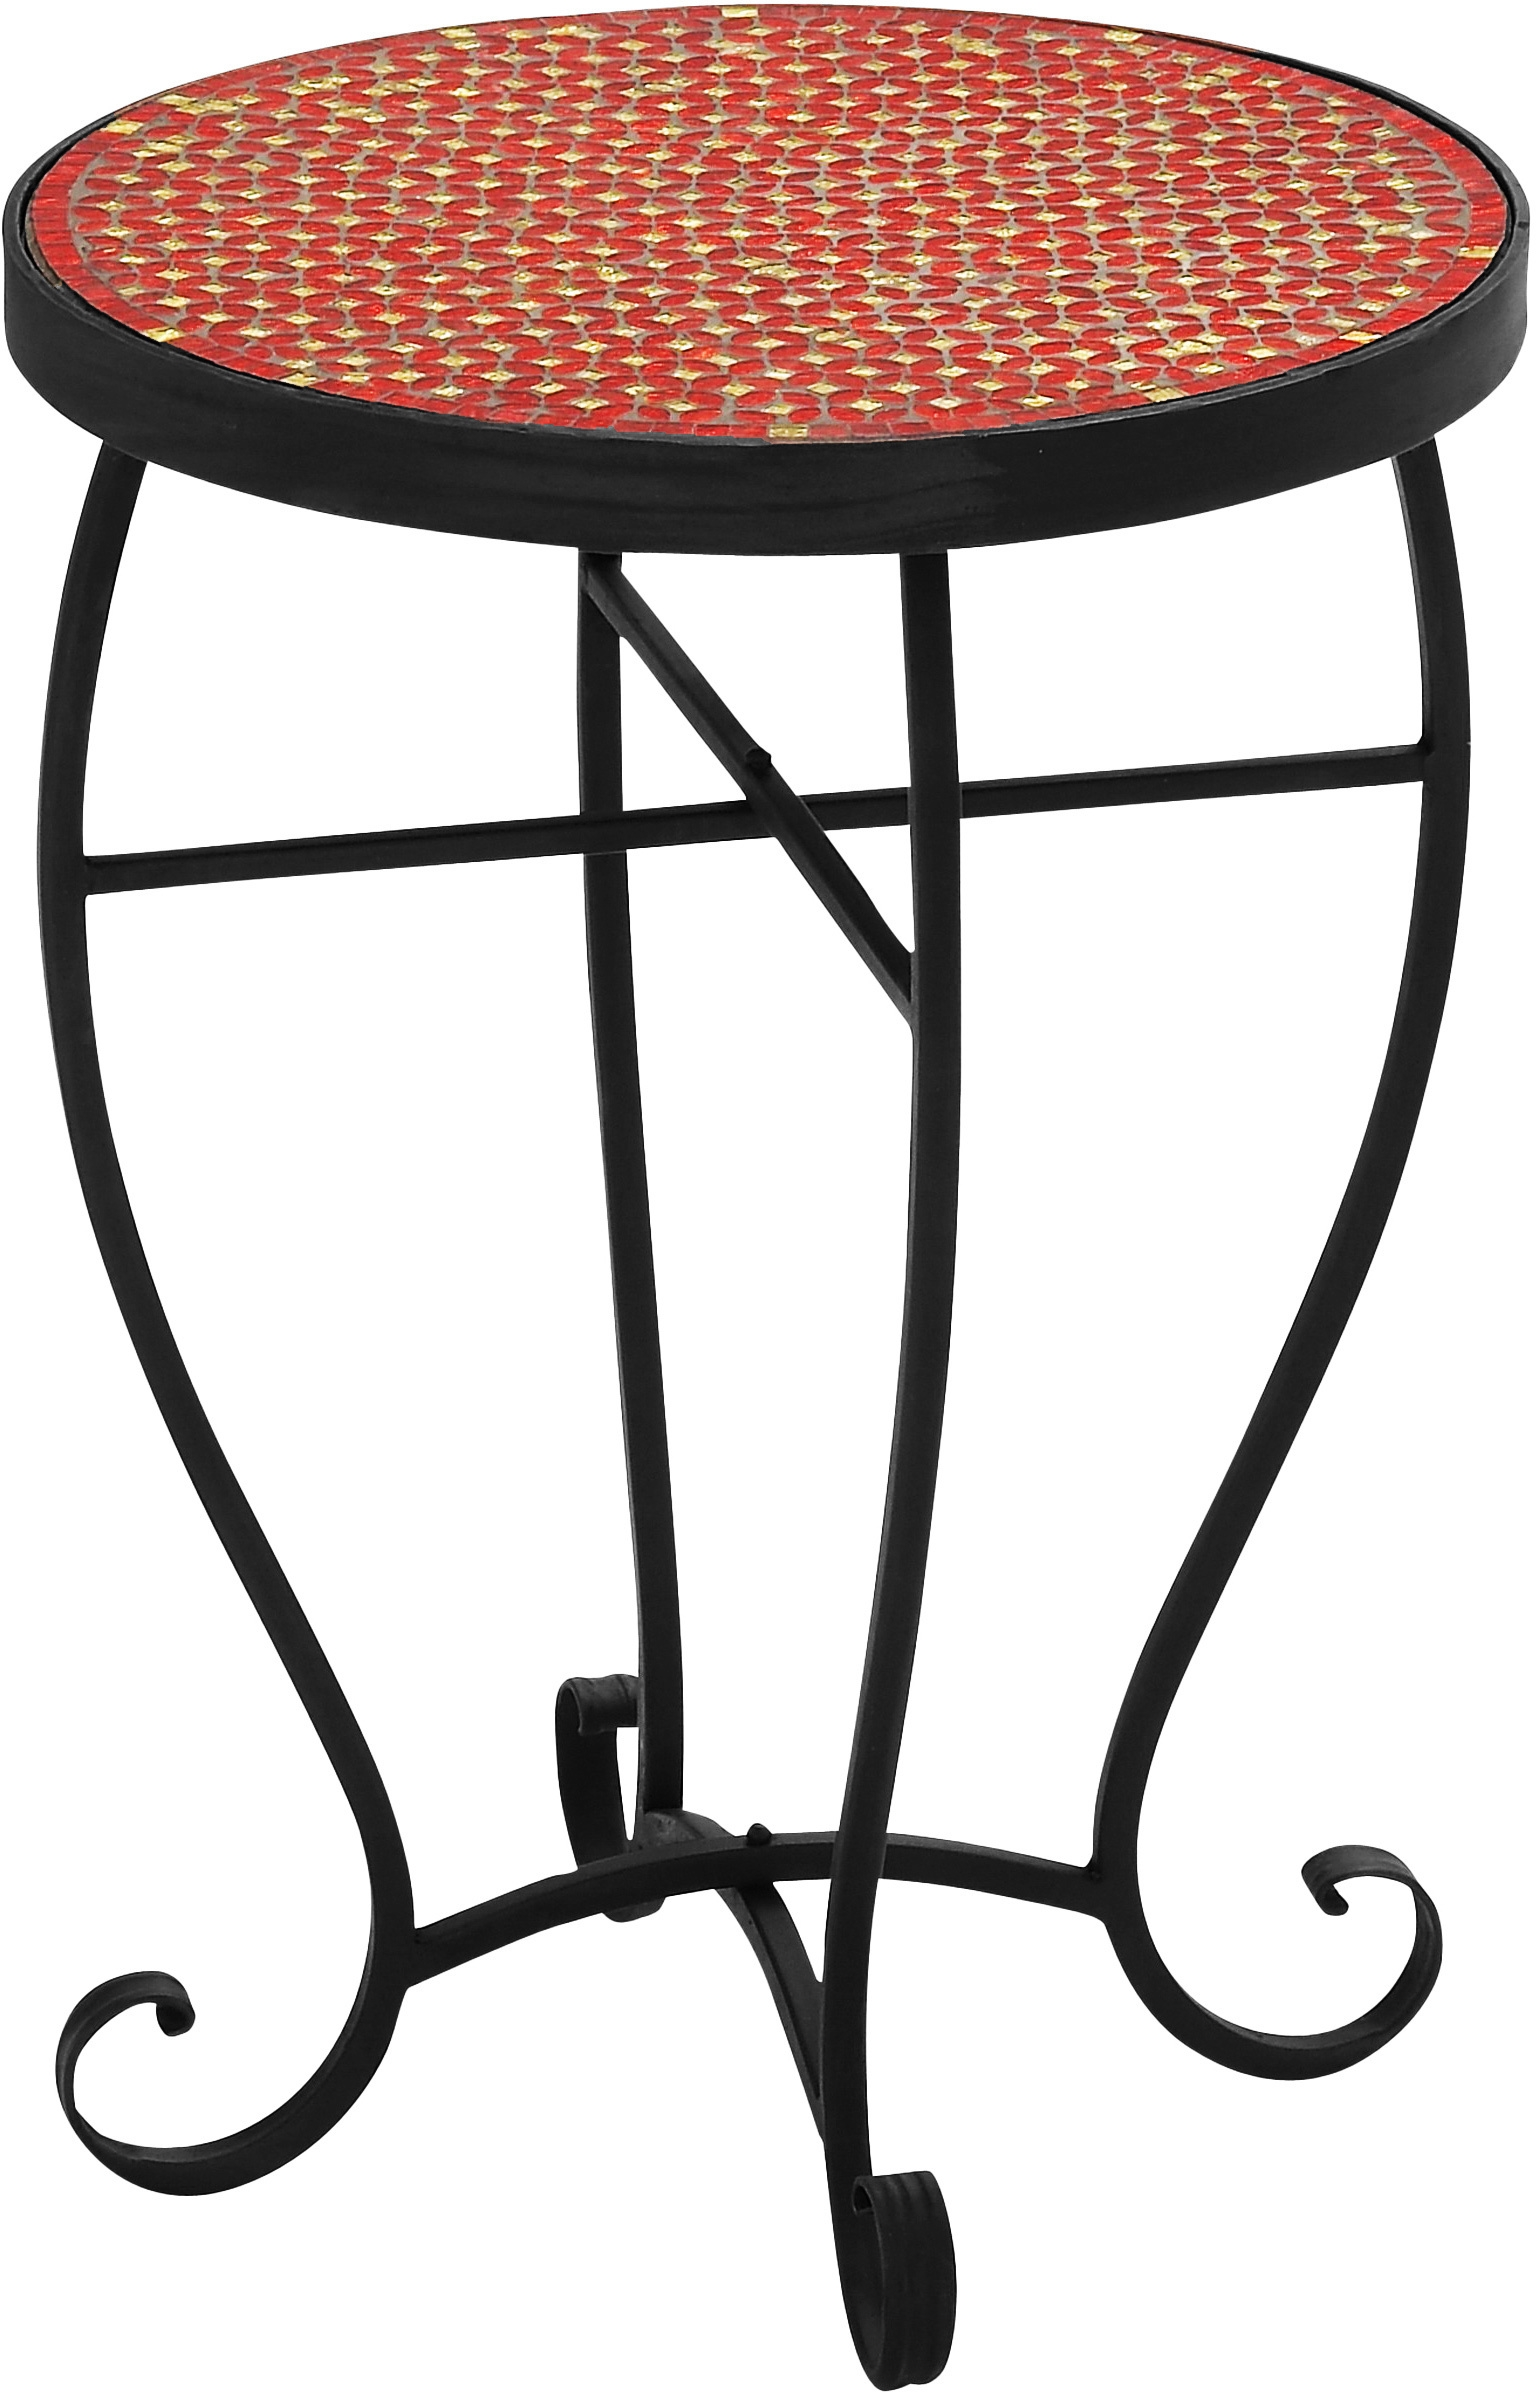 outdoor accent table mosaic red round side indoor end chrome patio ethan allen counter stools corner for bedroom kitchen diner target white lamp wicker chair hampton bay furniture